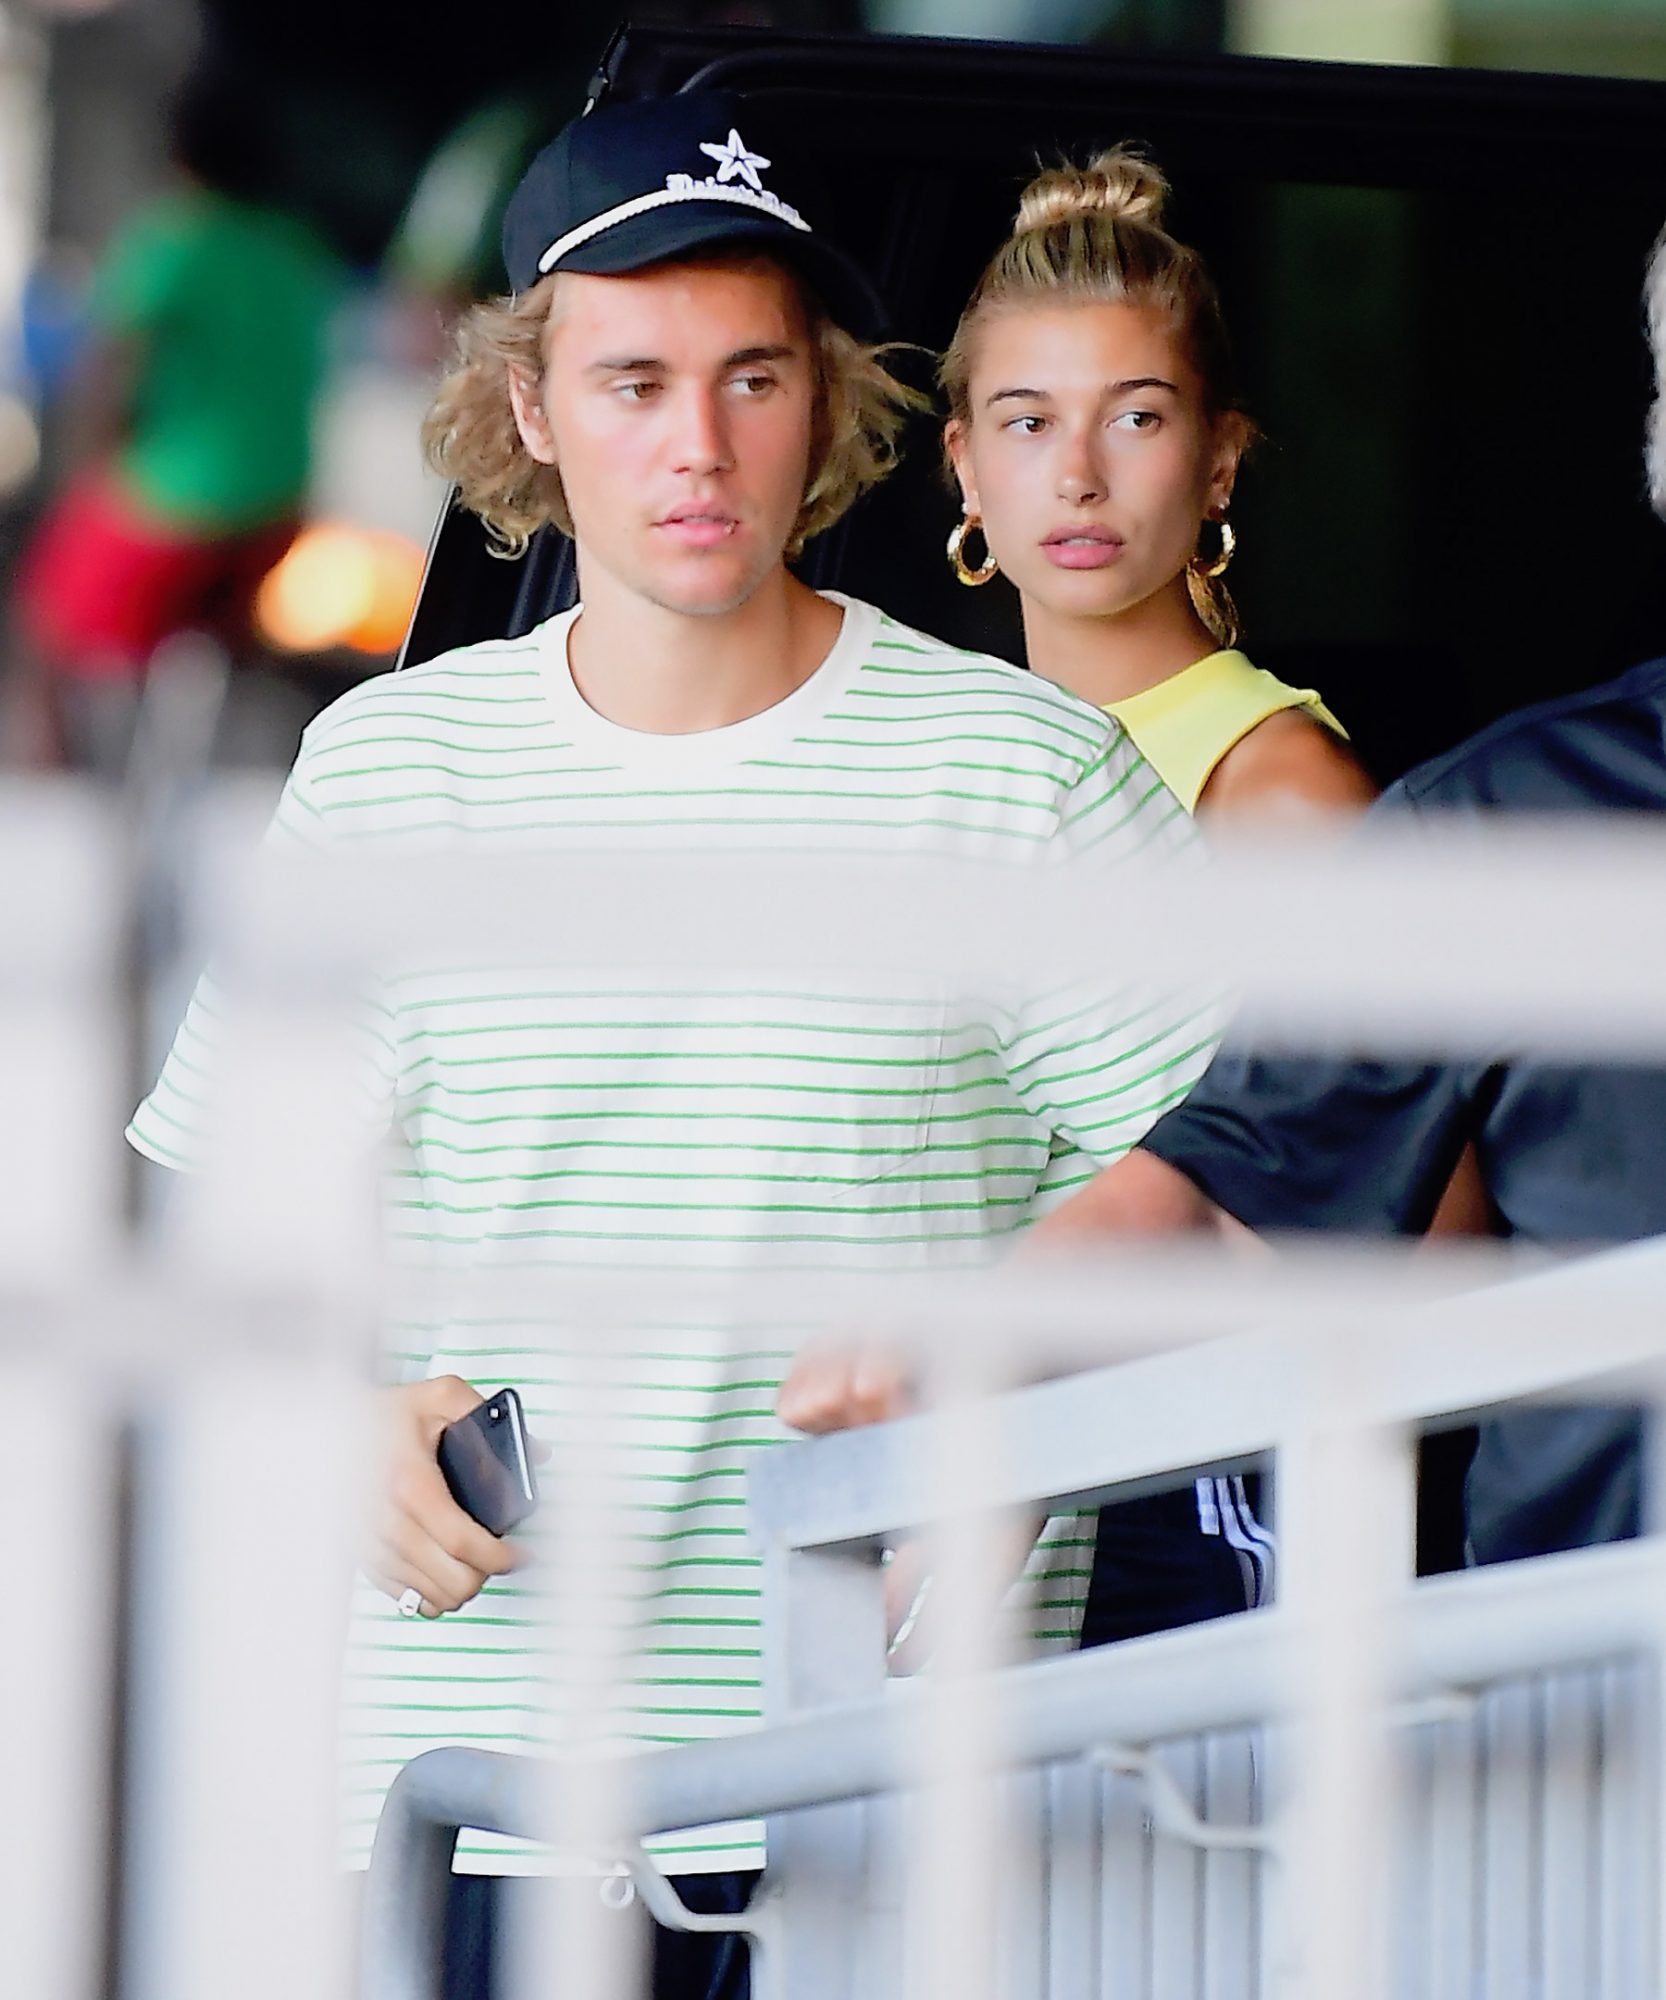 EXCLUSIVE: **PREMIUM EXCLUSIVE RATES APPLY**Justin Bieber And Hailey Baldwin Leave NYC by Helicopter to Visit Hailey's Parents Upstate